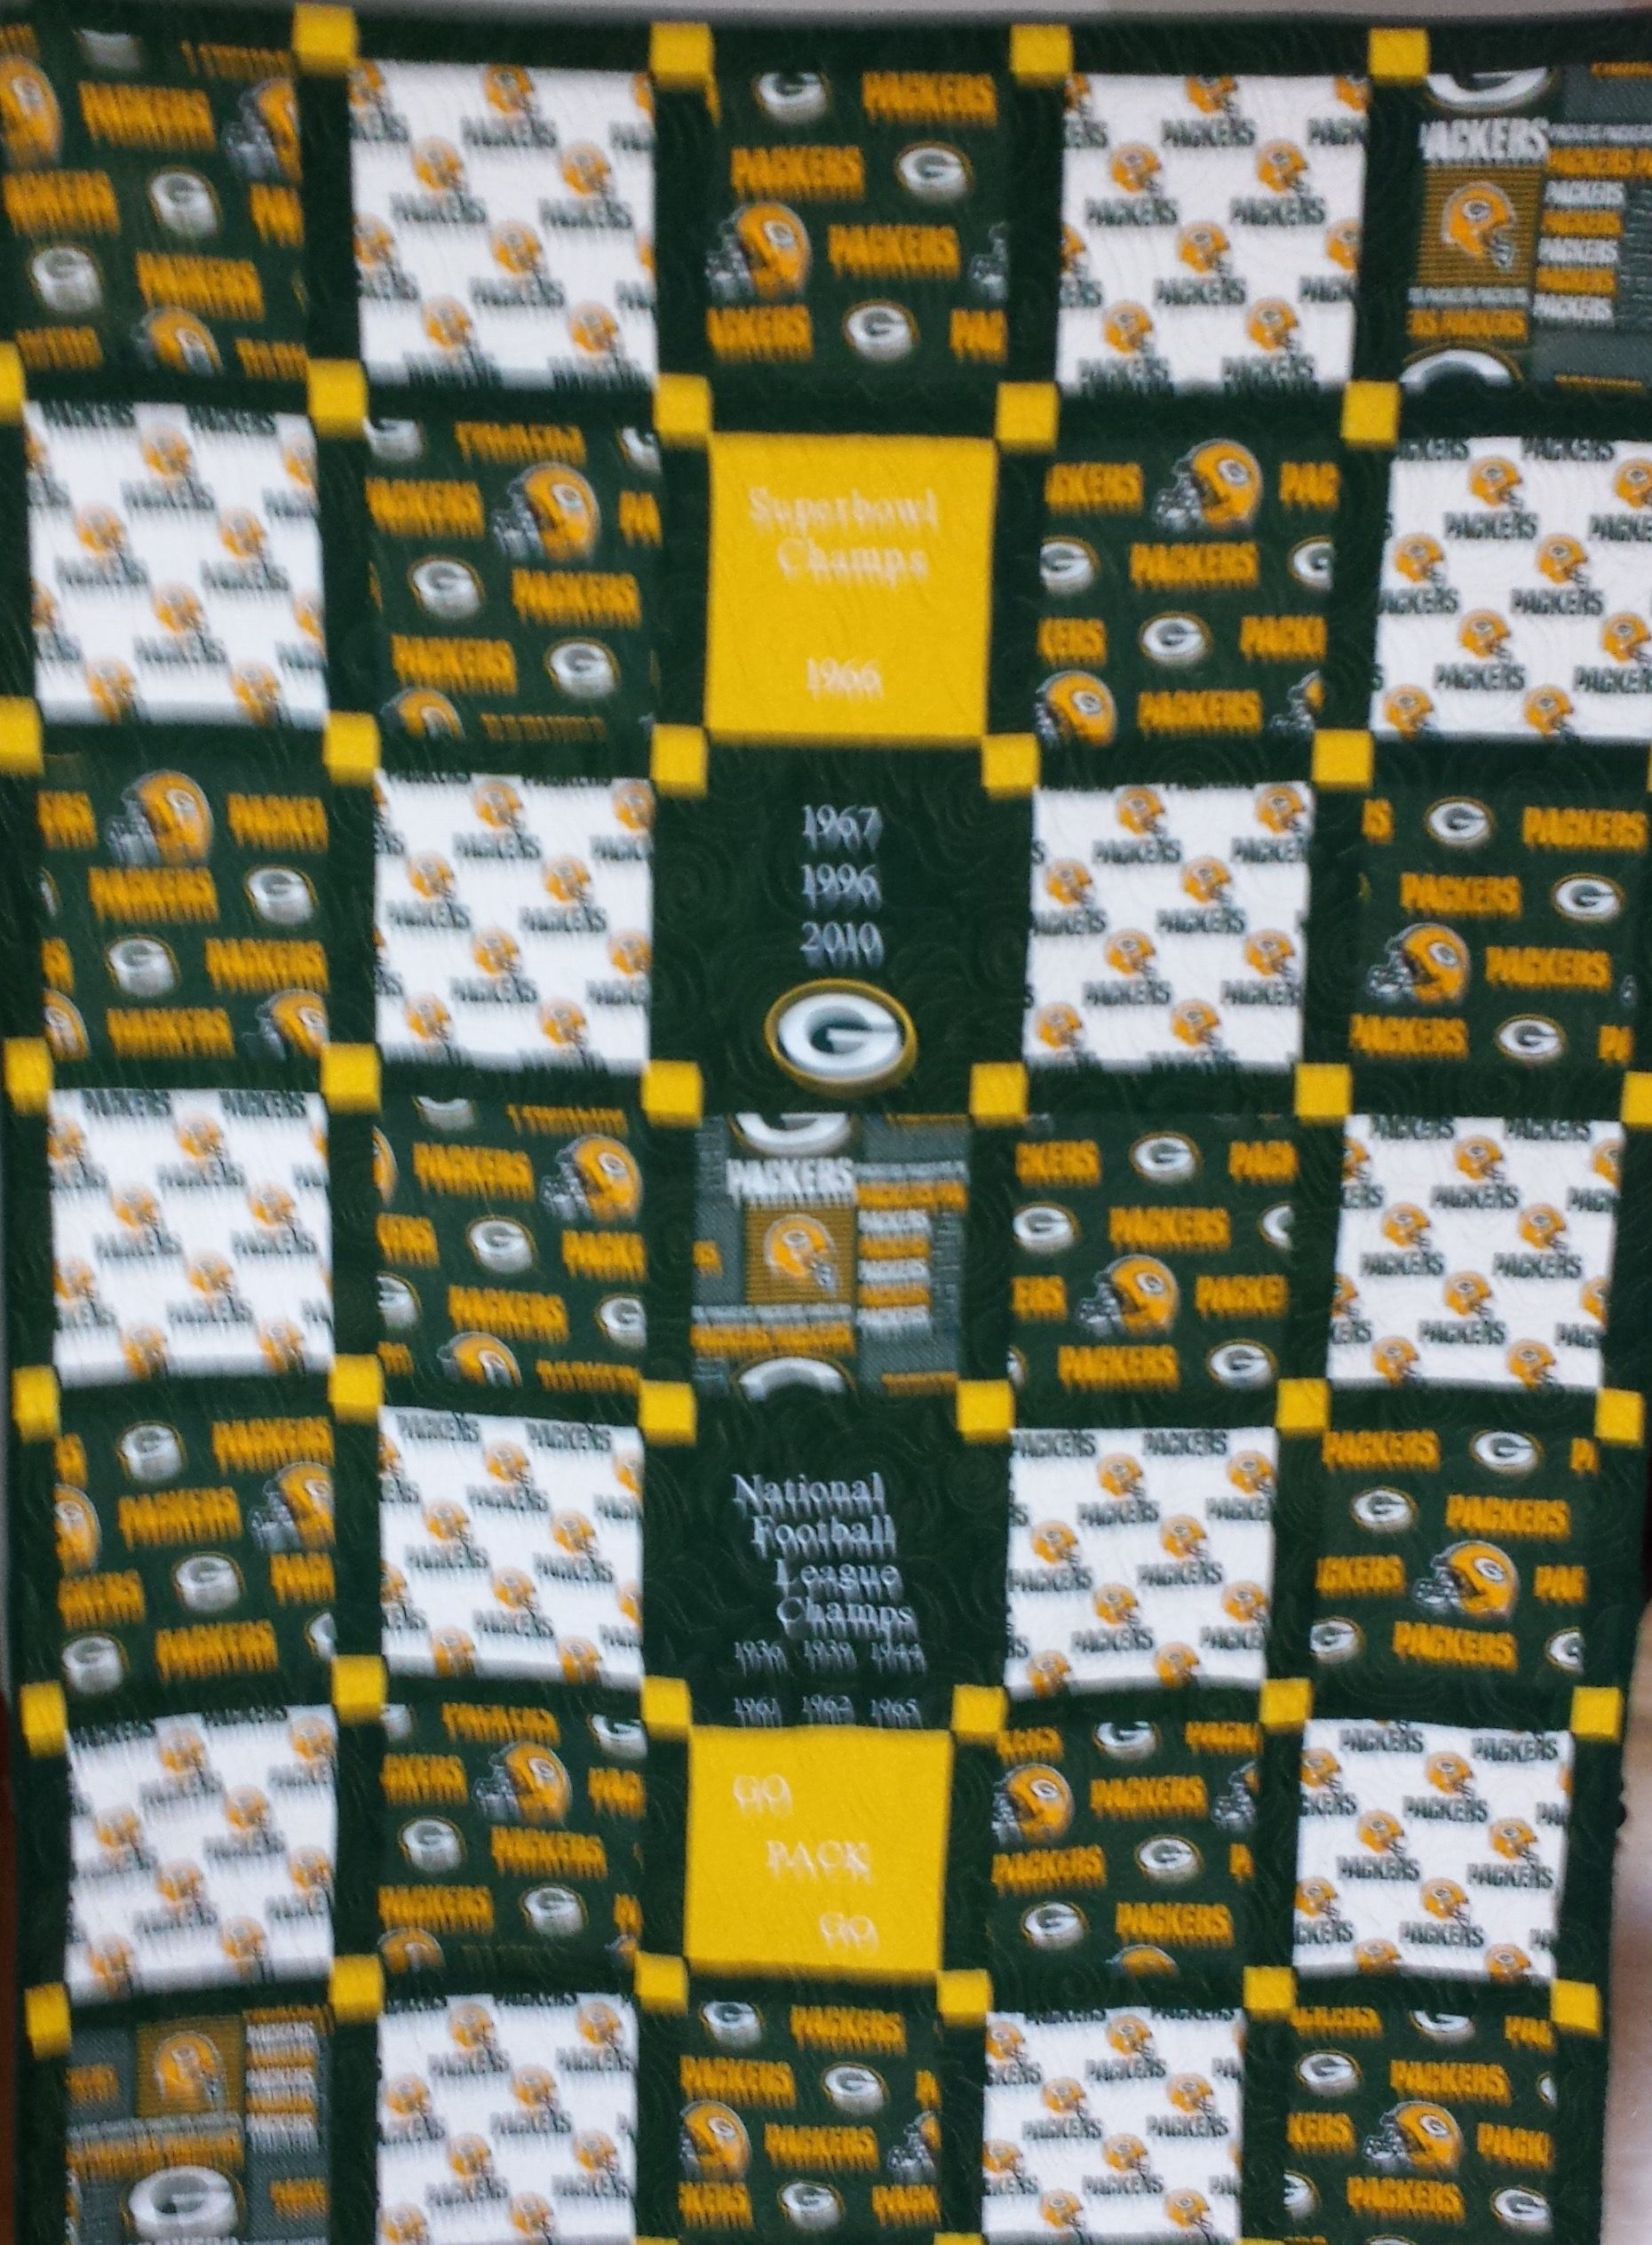 Green Bay Packer Quilt Designed Pieced And Quilted By Nanci Villareale At Hillside Lane Studios Sports Quilts Football Quilt Quilts